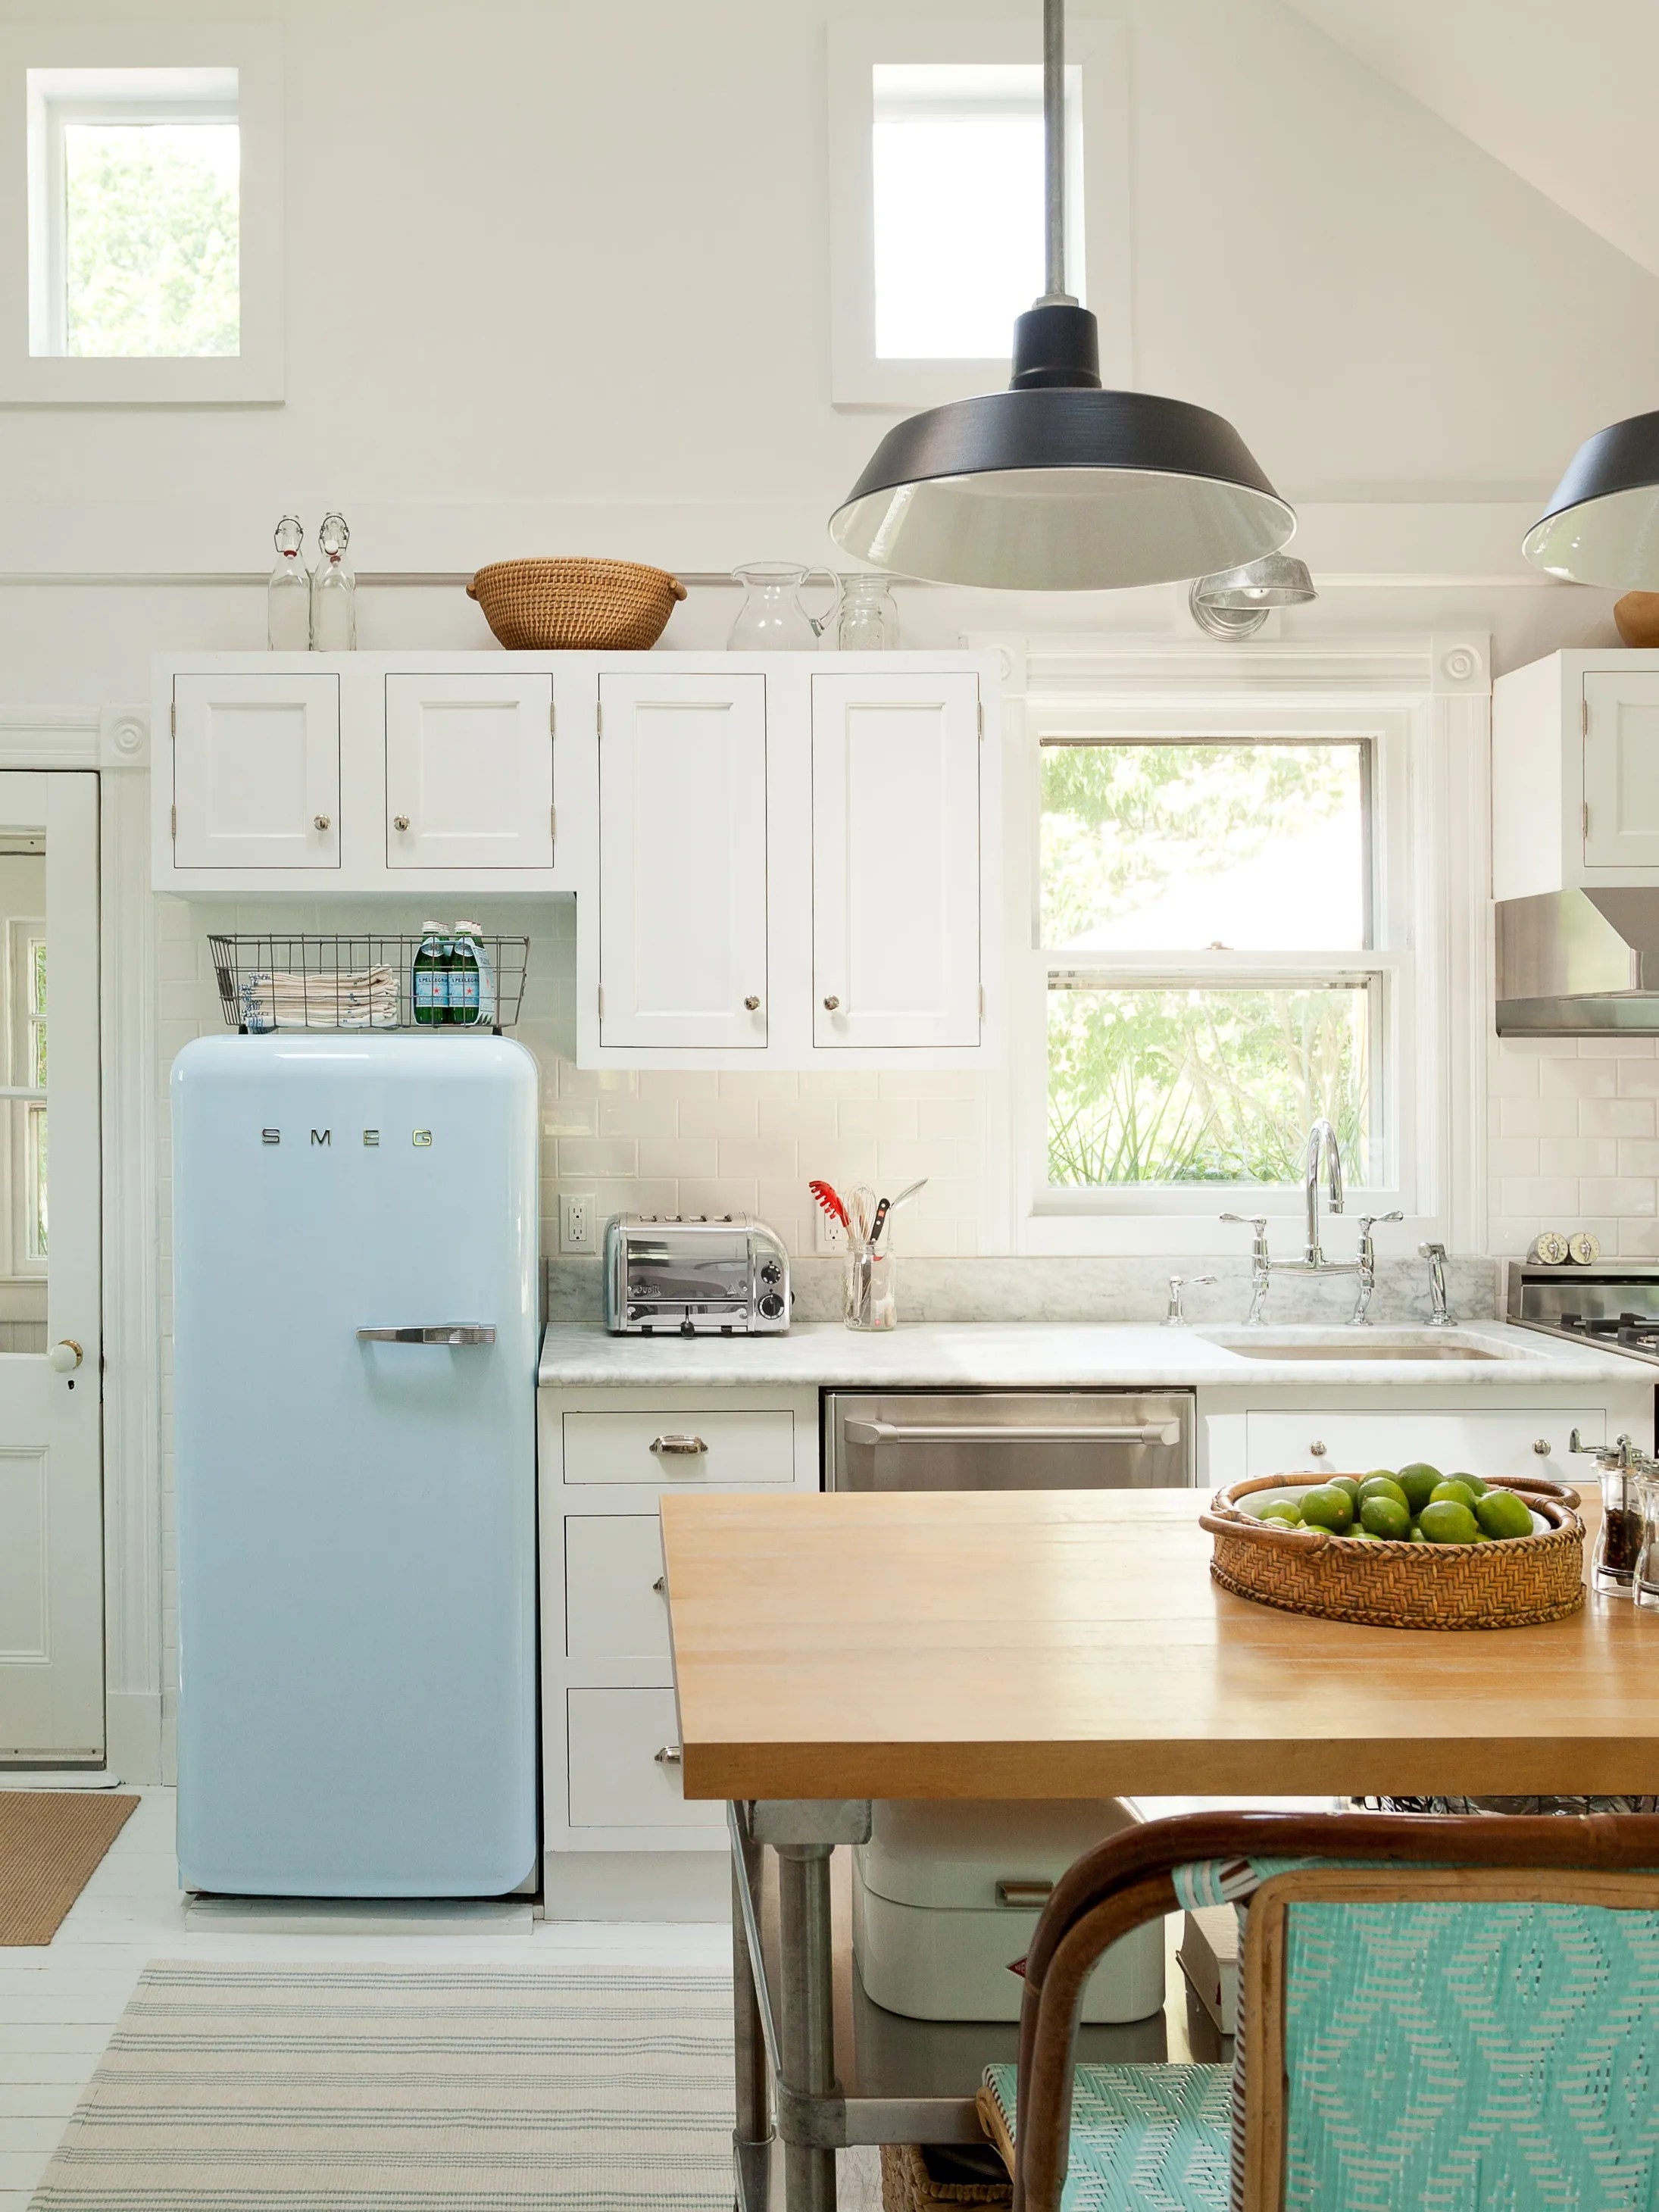 compact kitchens paint kitchen cabinets white the best small design ideas for your tiny space architectural digest